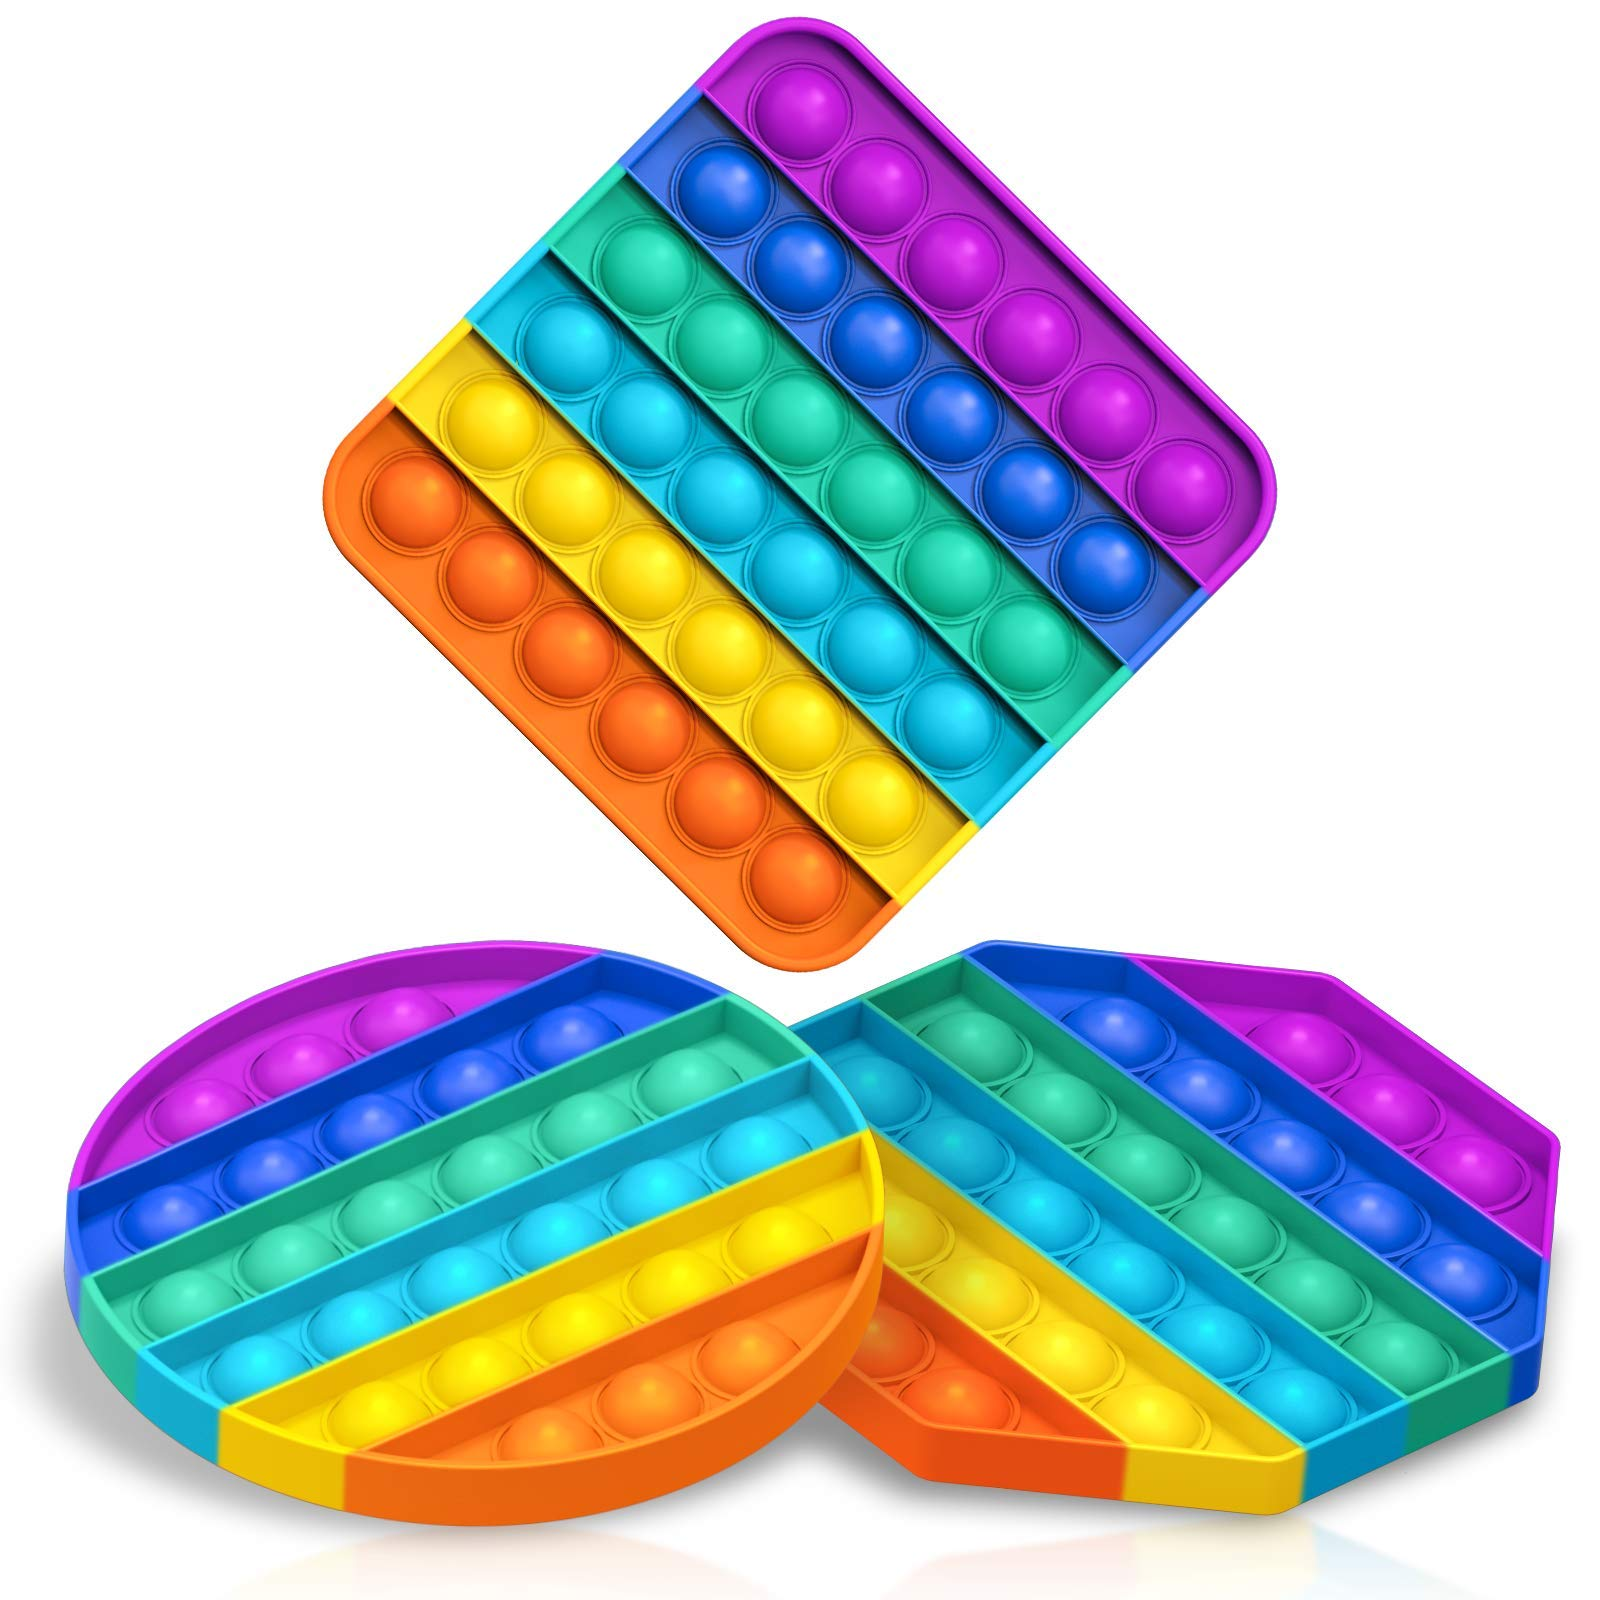 KOUQIYA Rainbow Pop Fidget Toys , 3 Pack Push Pop Bubble Fidget Sensory Toy Anxiety Relief Toys for Boys and Girls Colorful ADHD Toys Fidgets for Kids